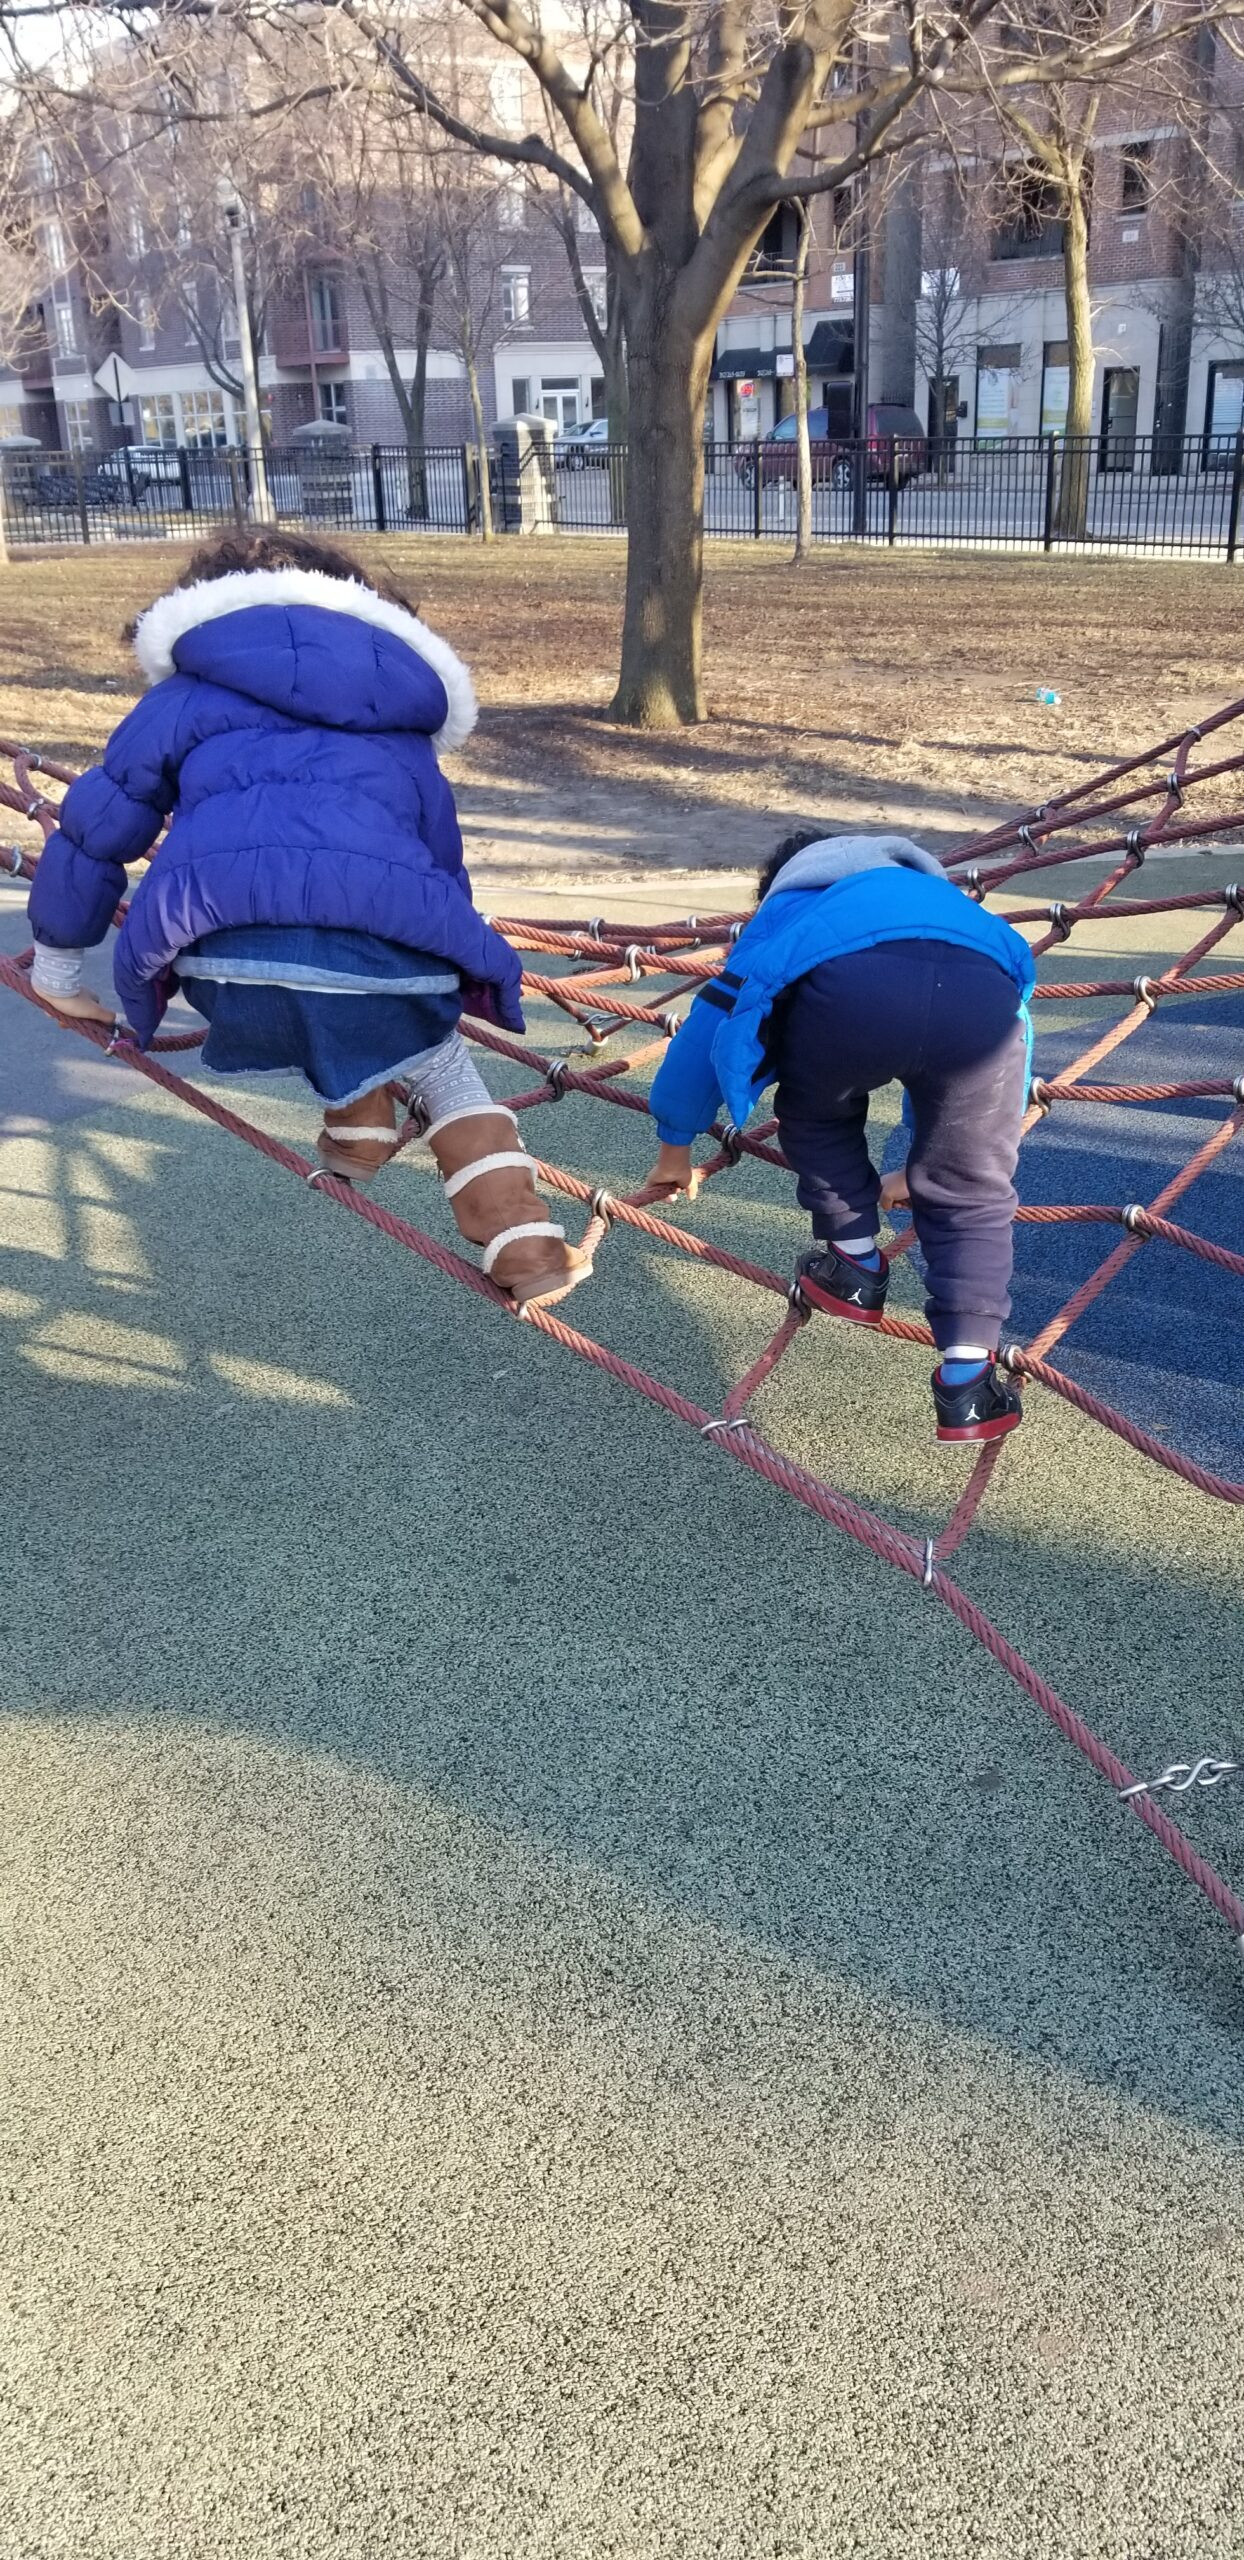 My children playing at a park near our home in Chicago